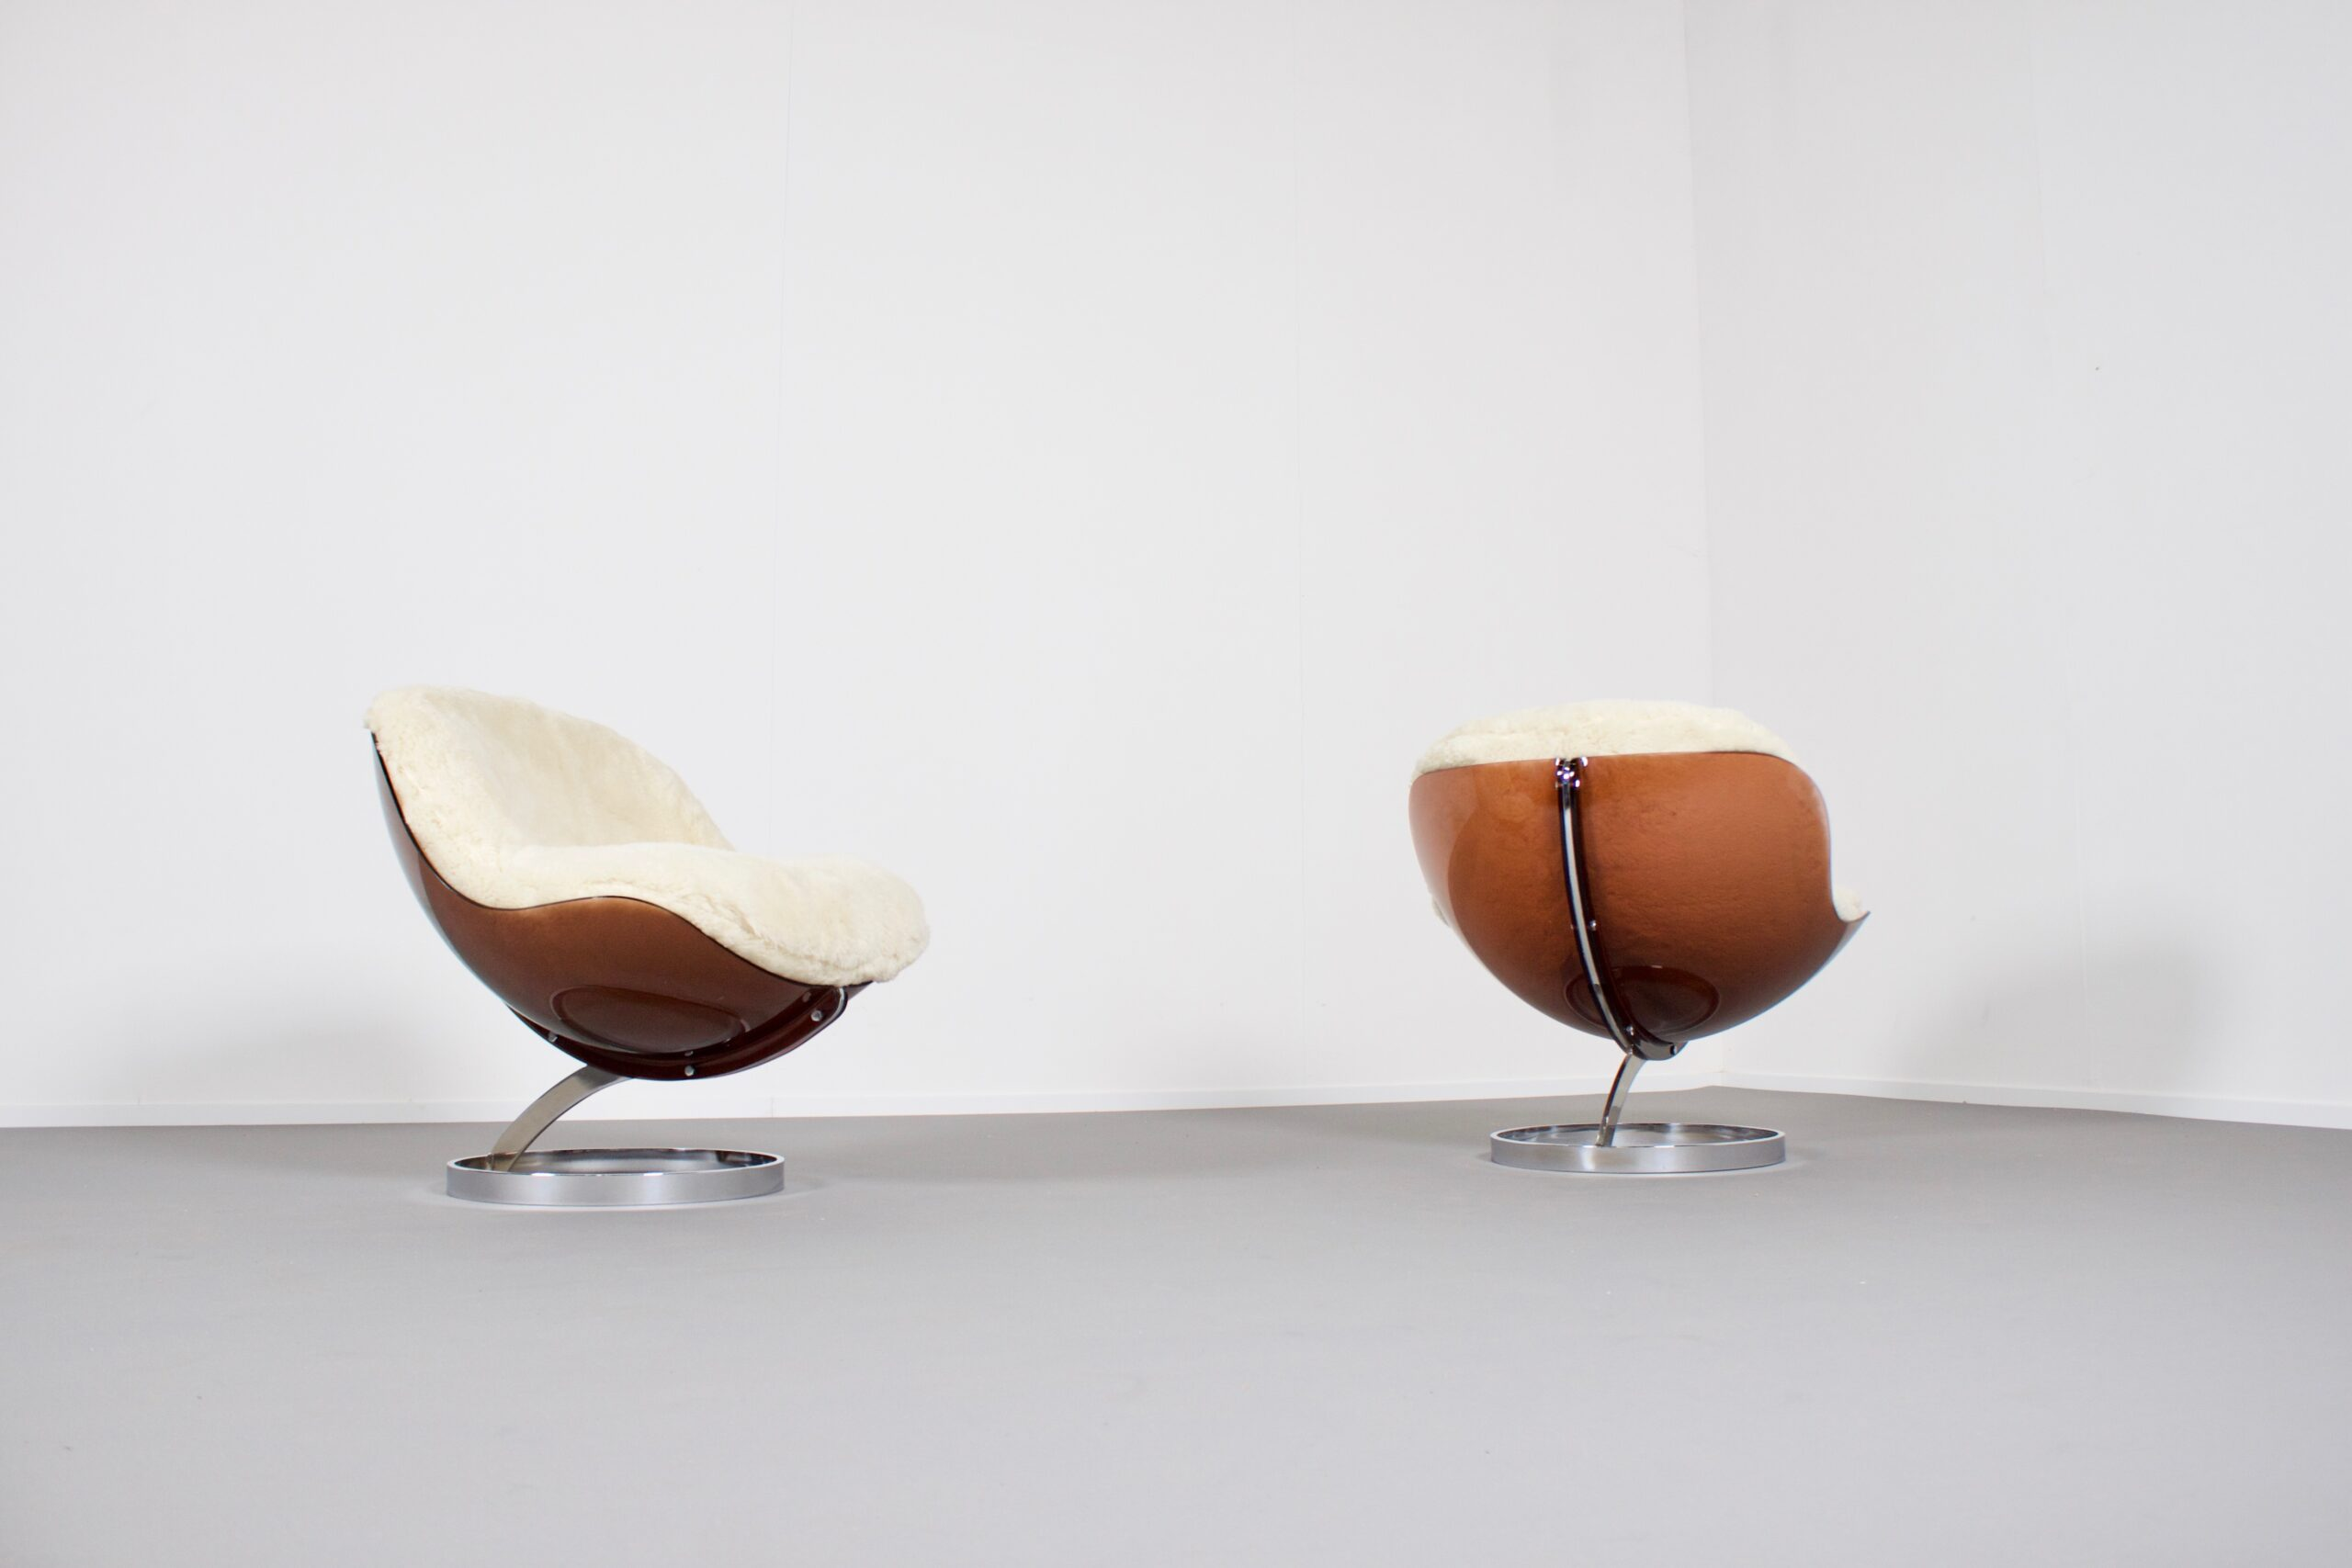 'Sphere' Lounge Chairs by Boris Tabacoff for MMM, France, 1971